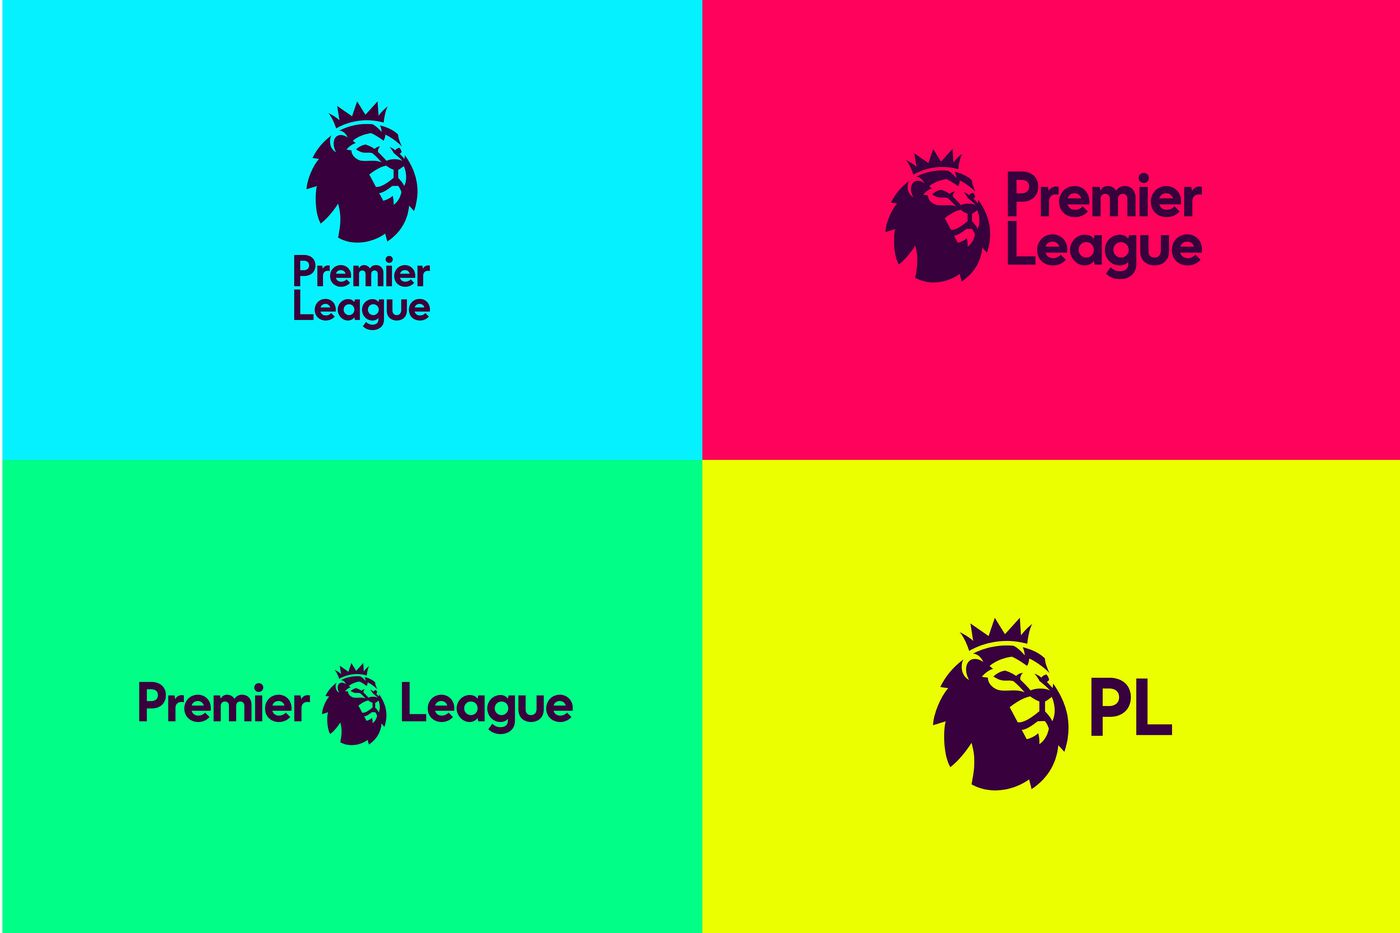 About Logo Get all the latest football news betting tips and promotions for all the major leagues around the world Read in depth articles on all major Premier